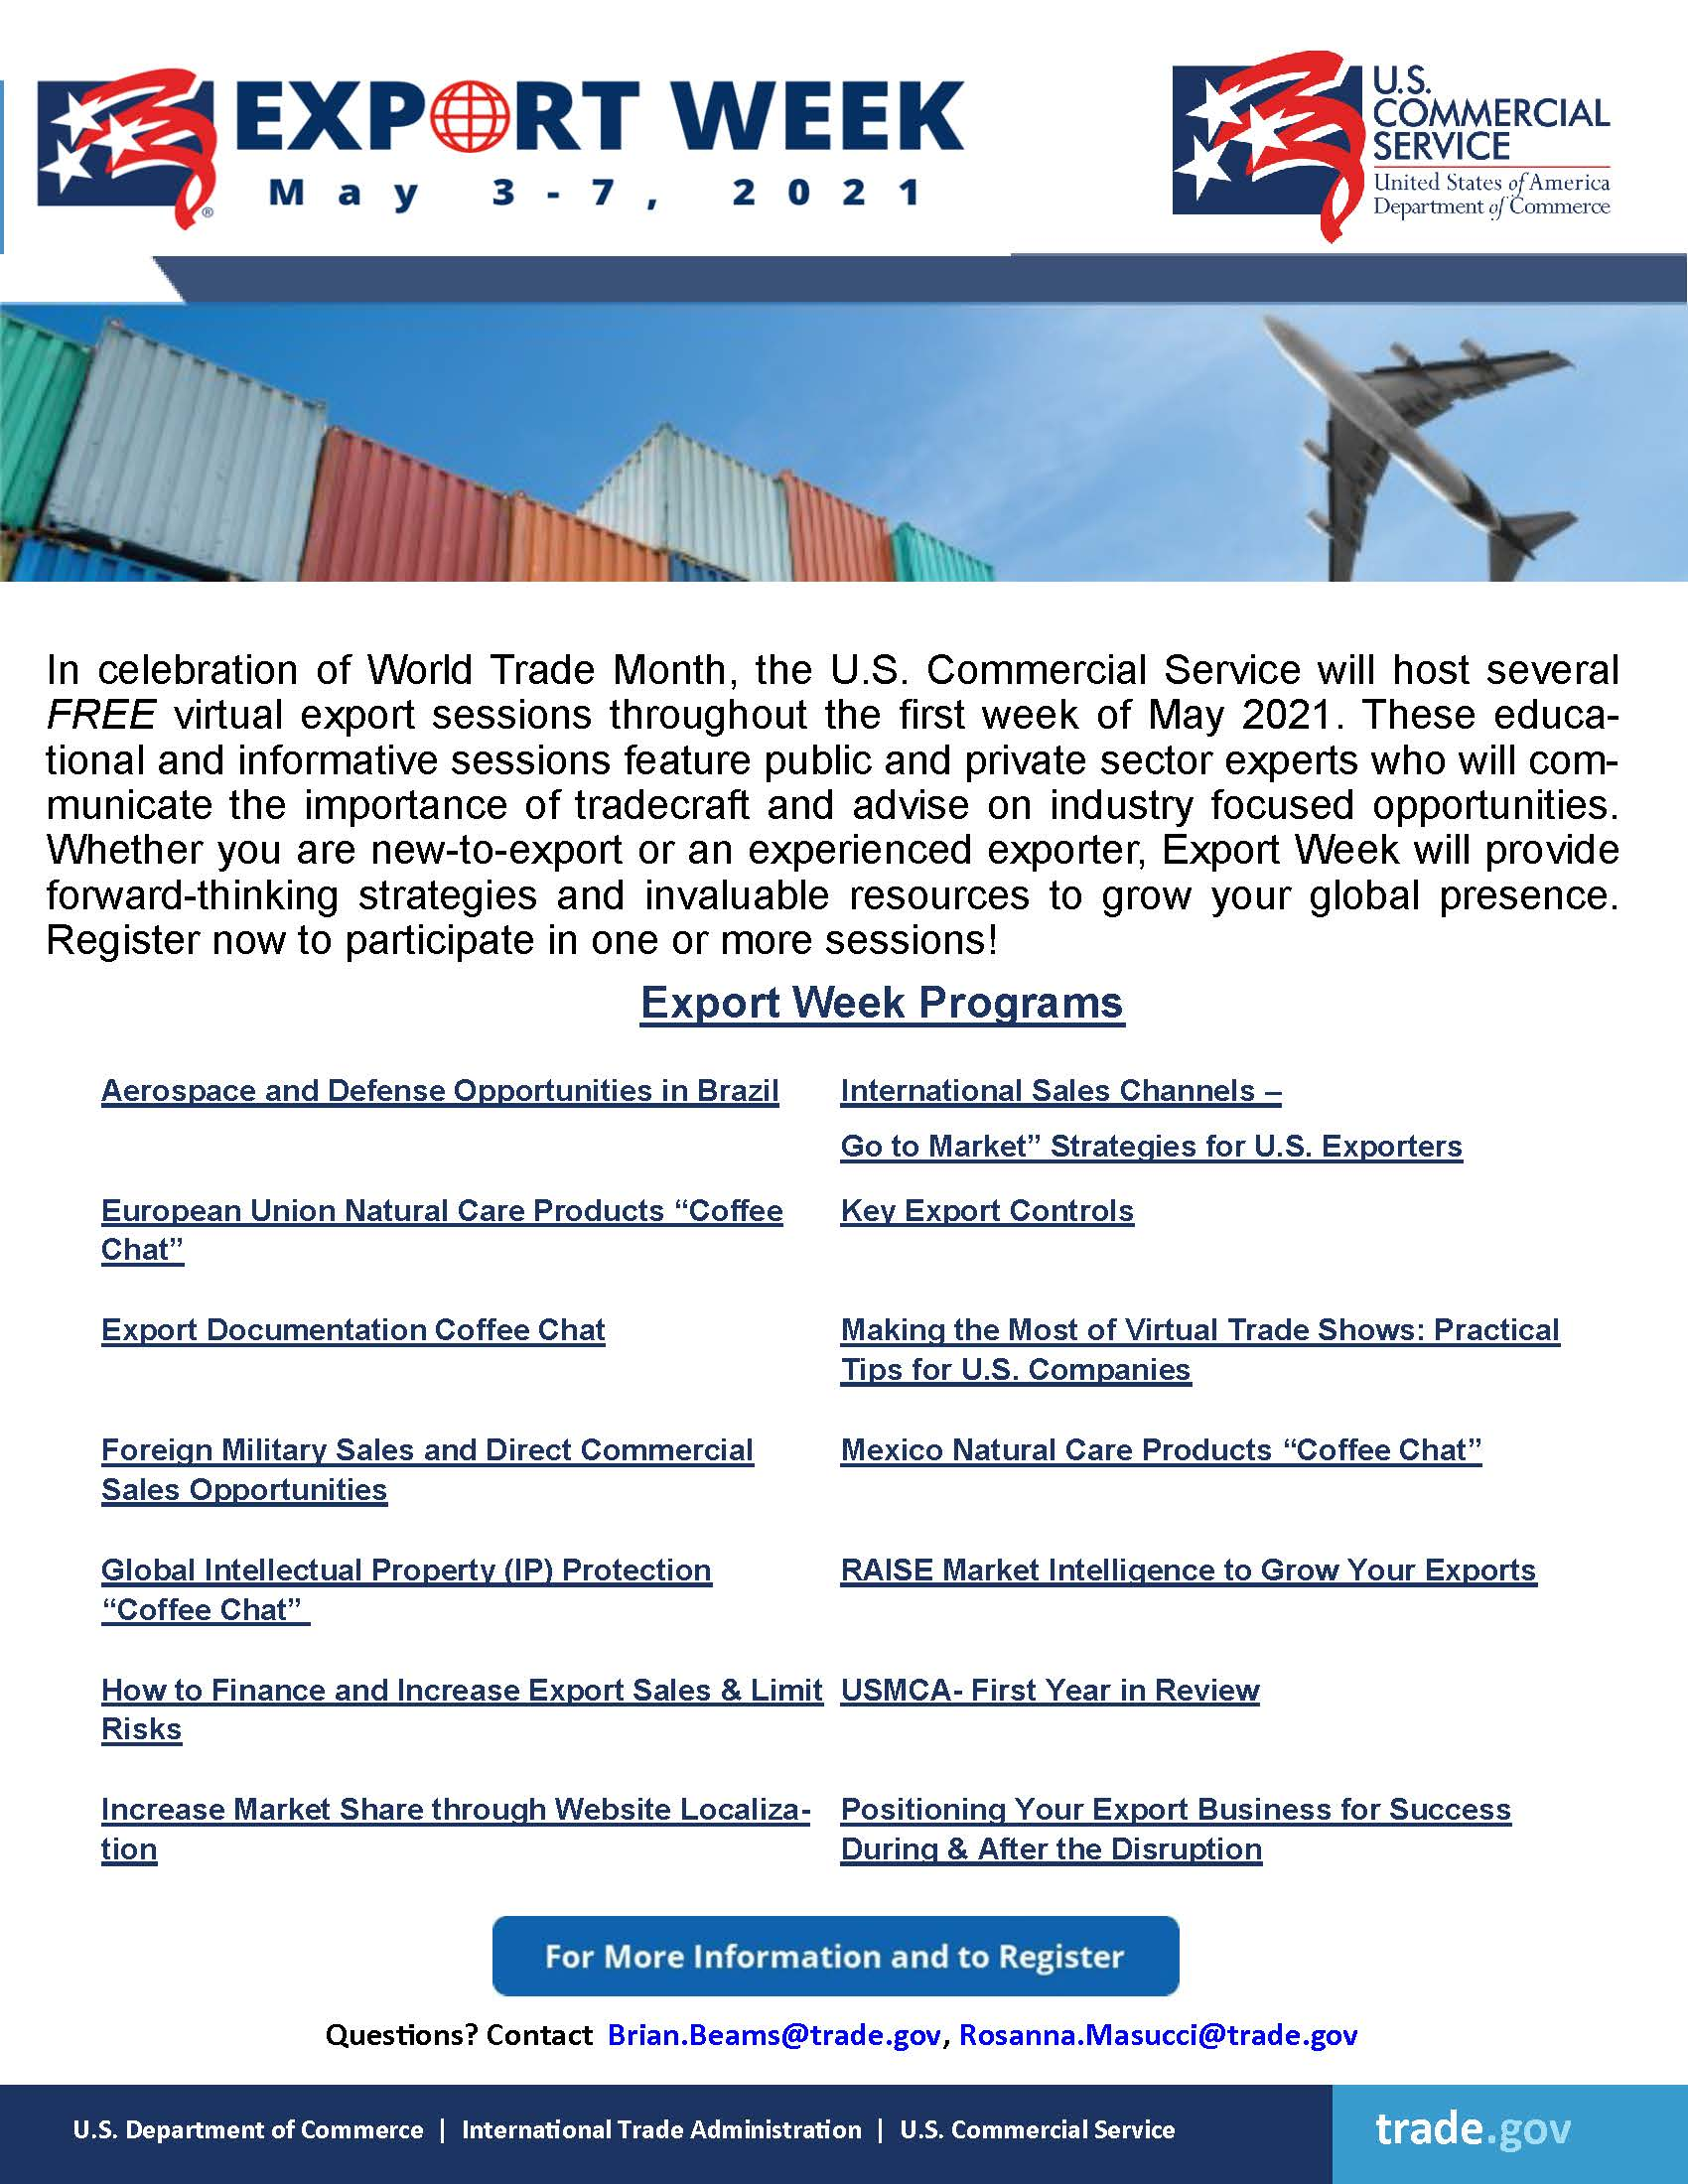 US Commercial Service - Export Week May3-7, 2021